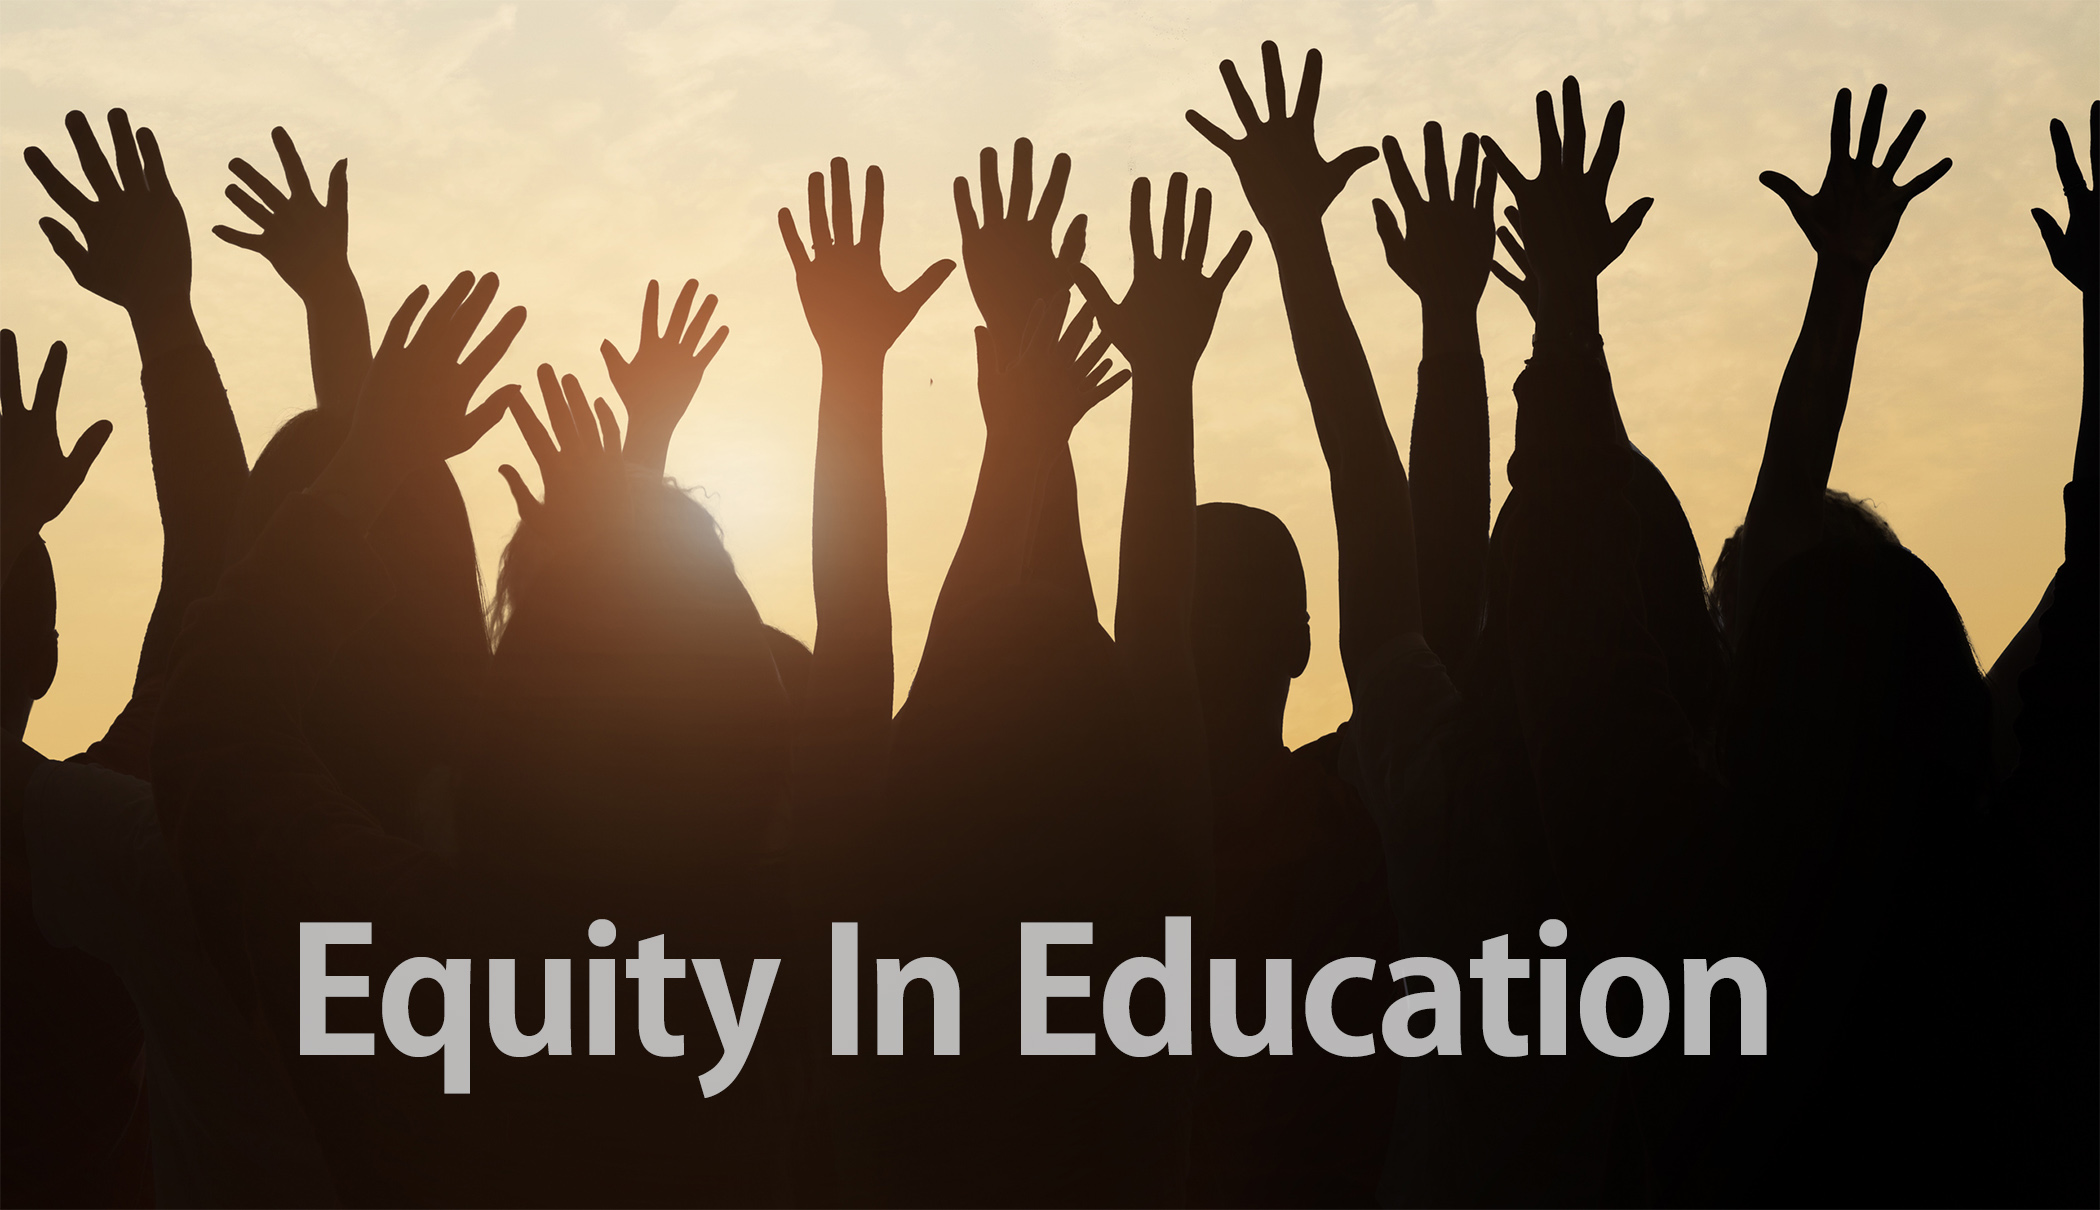 Equity in Education Resources